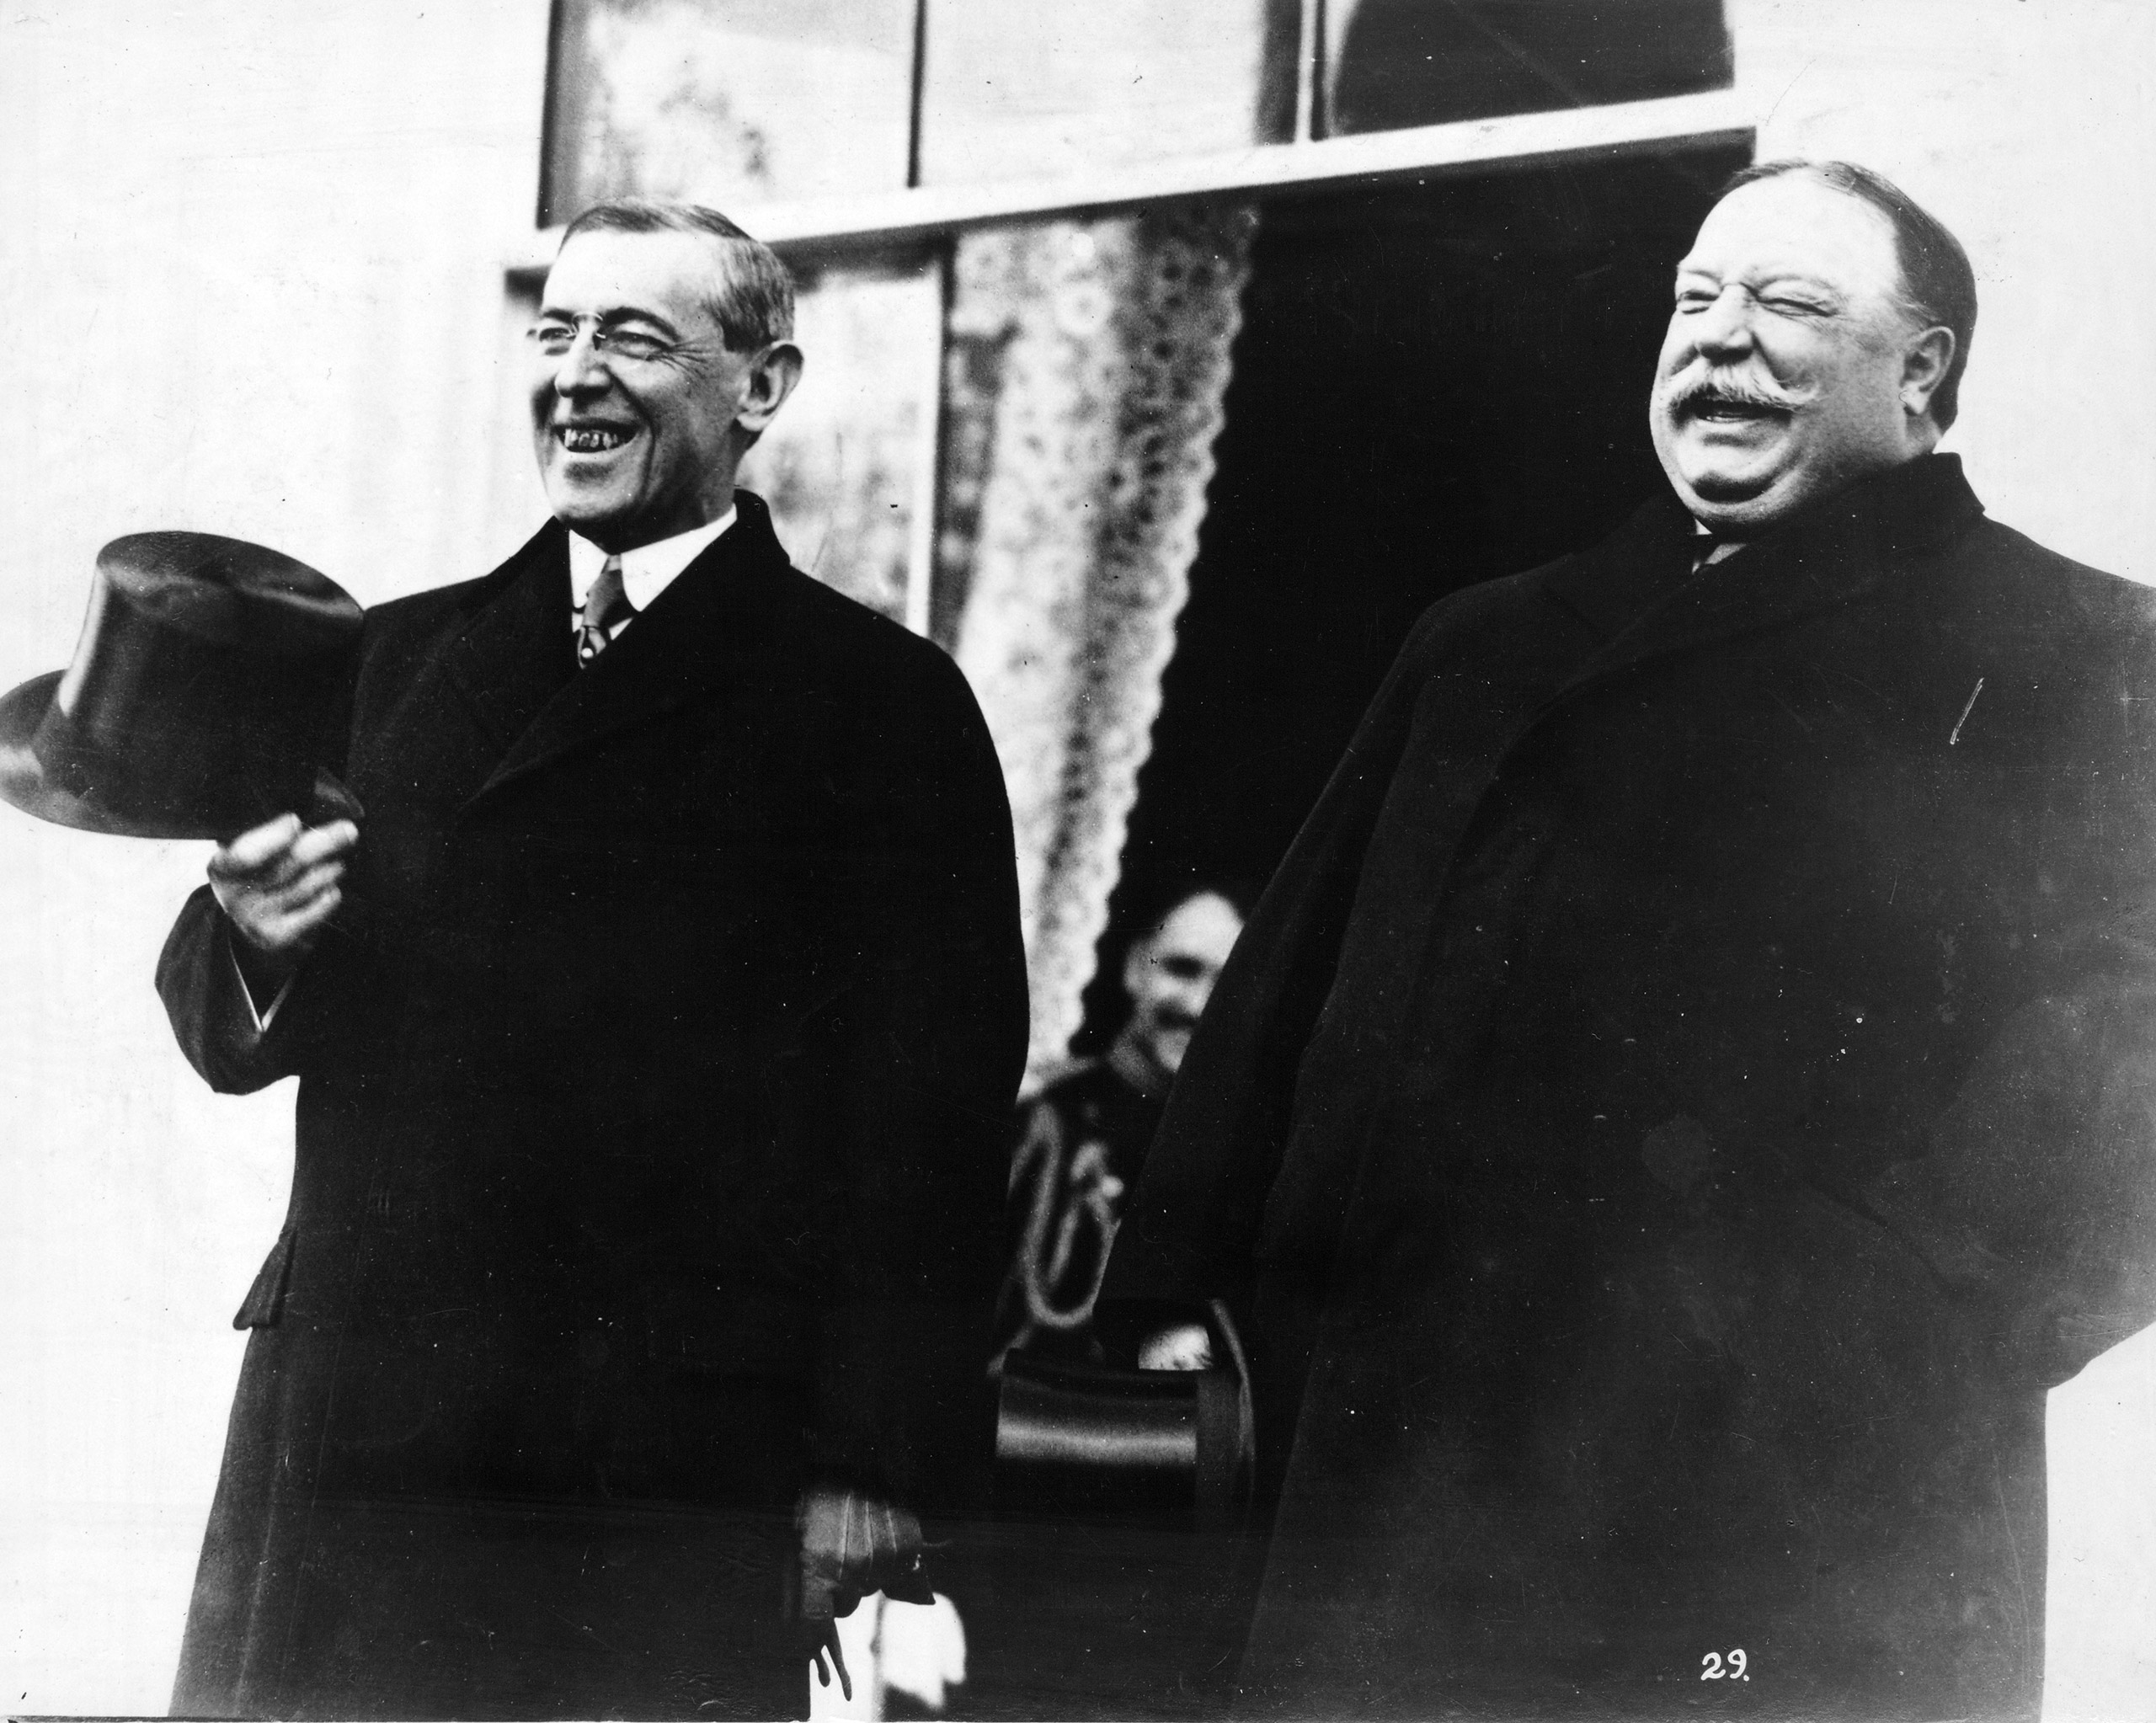 President-elect Woodrow Wilson and President Taft, standing side by side, laughing, at the White House, prior to Wilson's inauguration ceremonies, March 4, 1913.